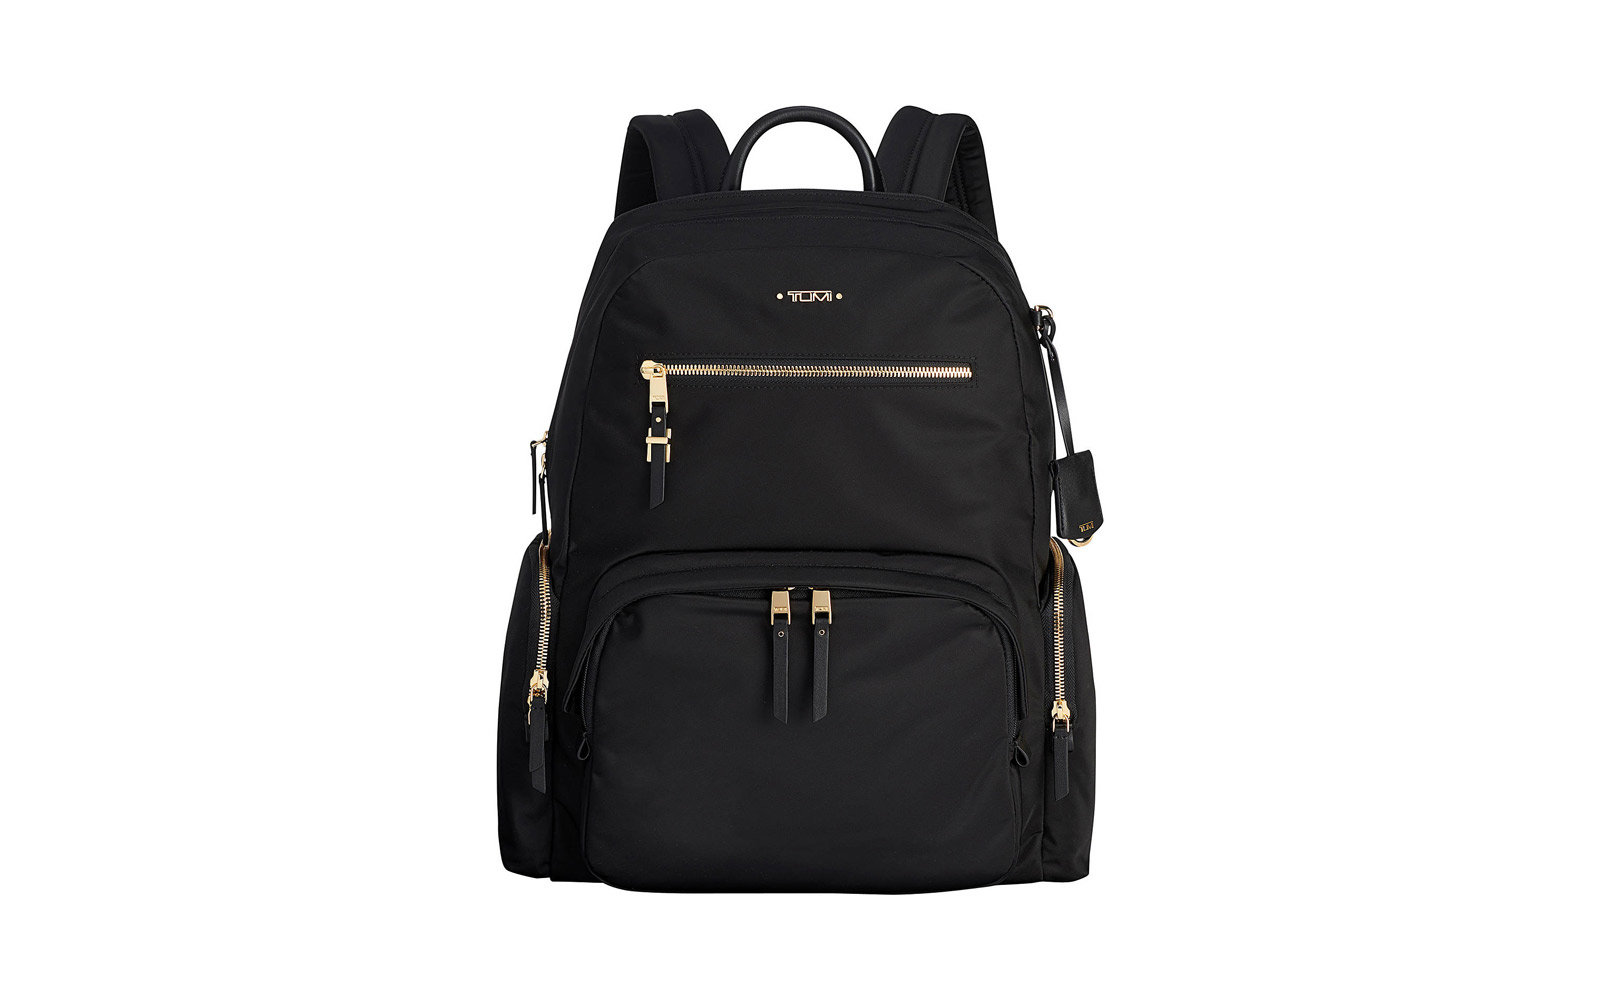 Save up to 70% Off Laptop Backpacks at eBags